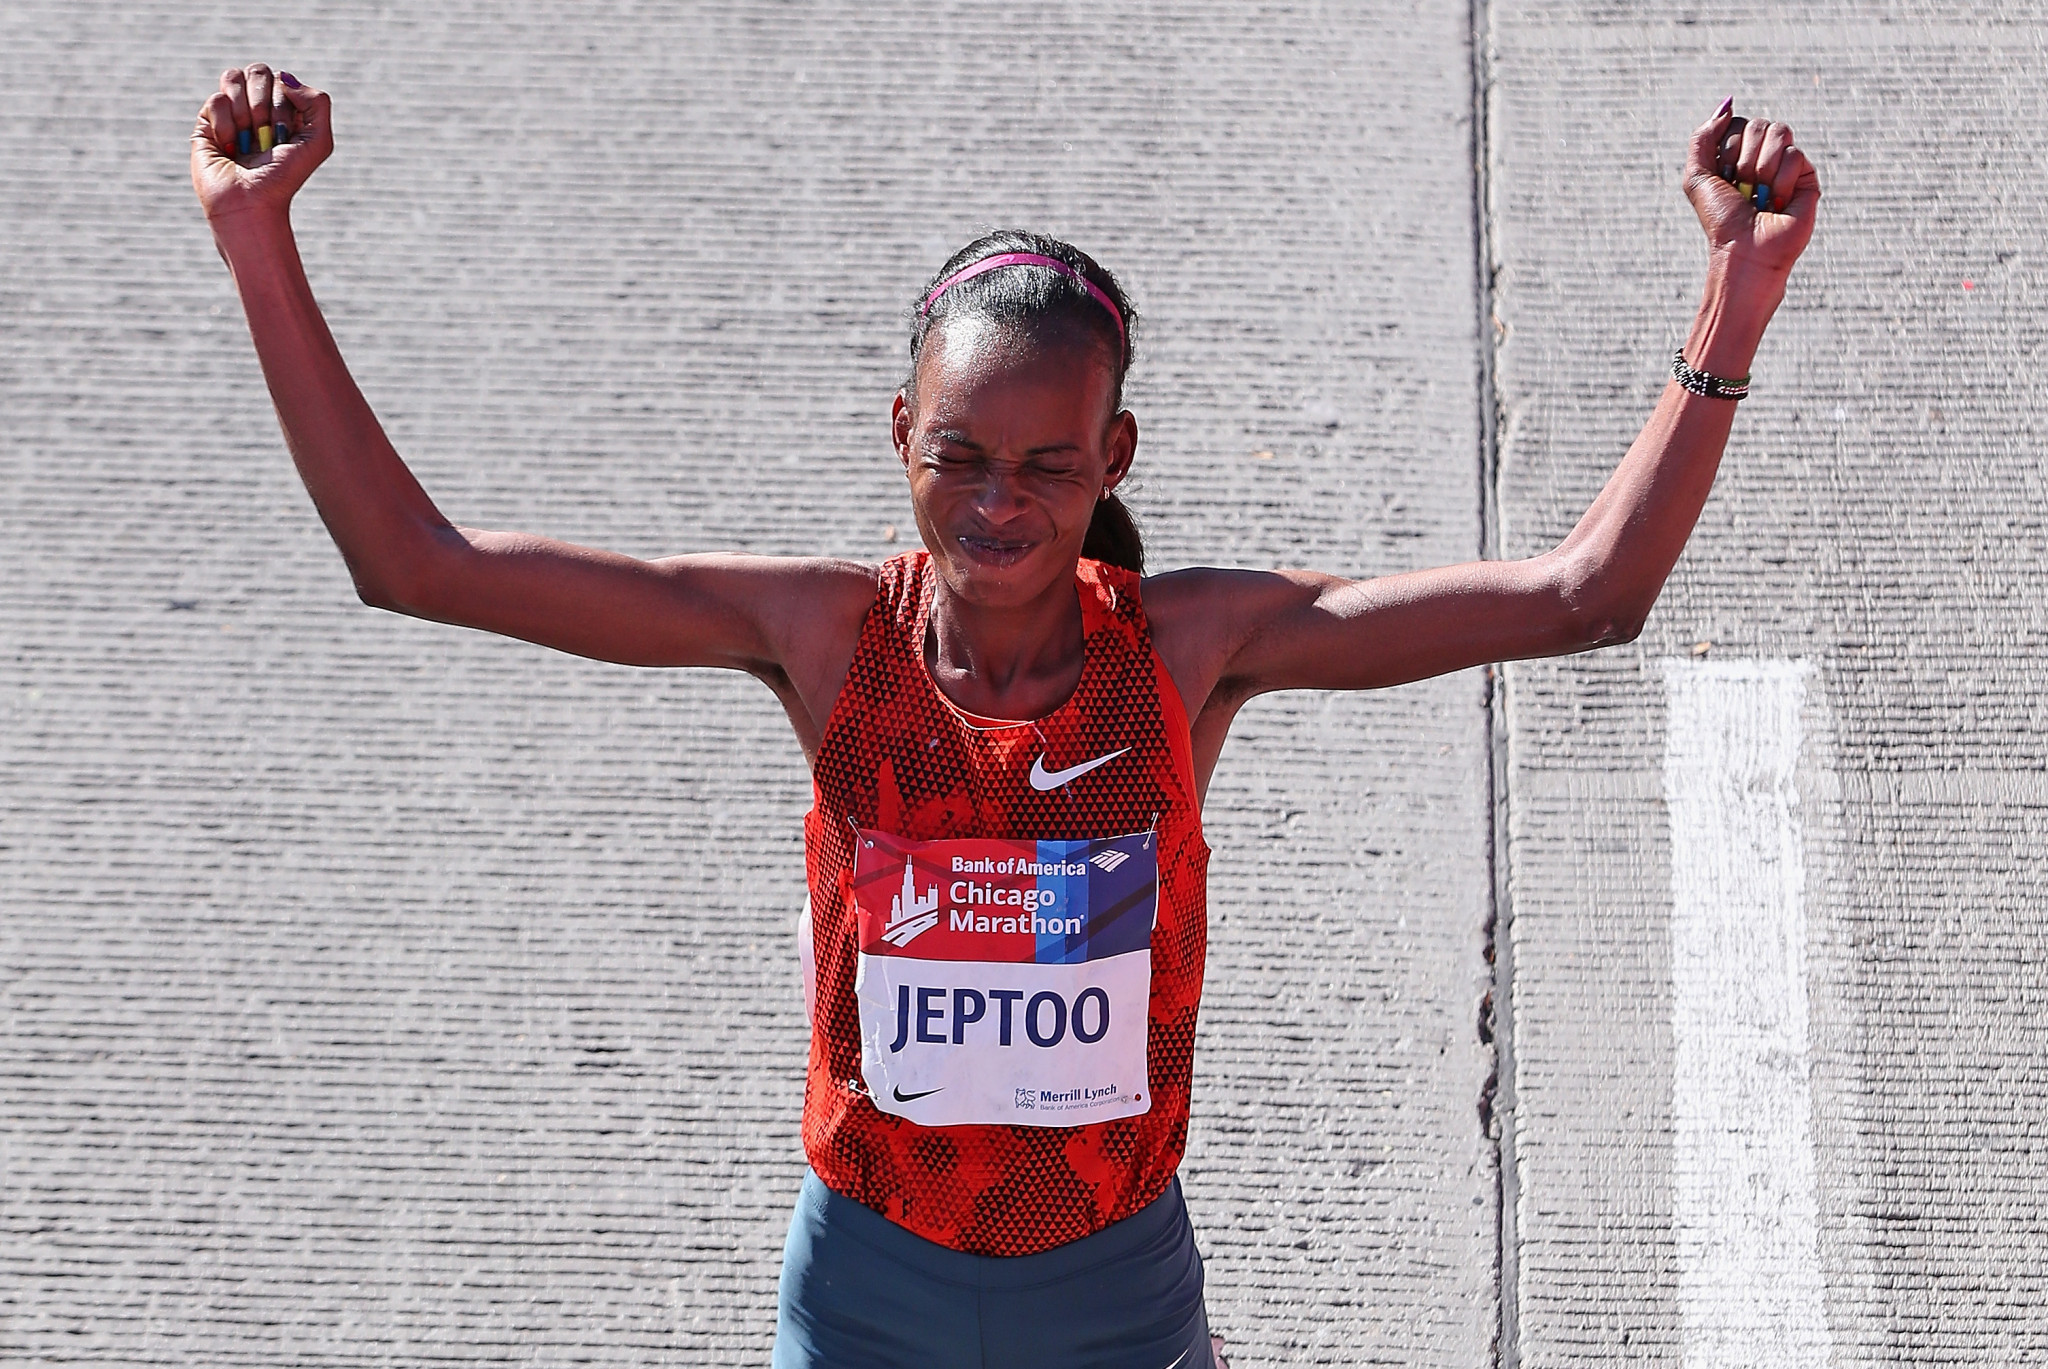 Rita Jeptoo is among other high-profile Kenyan athletes to have failed a drugs test in recent years ©Getty Images